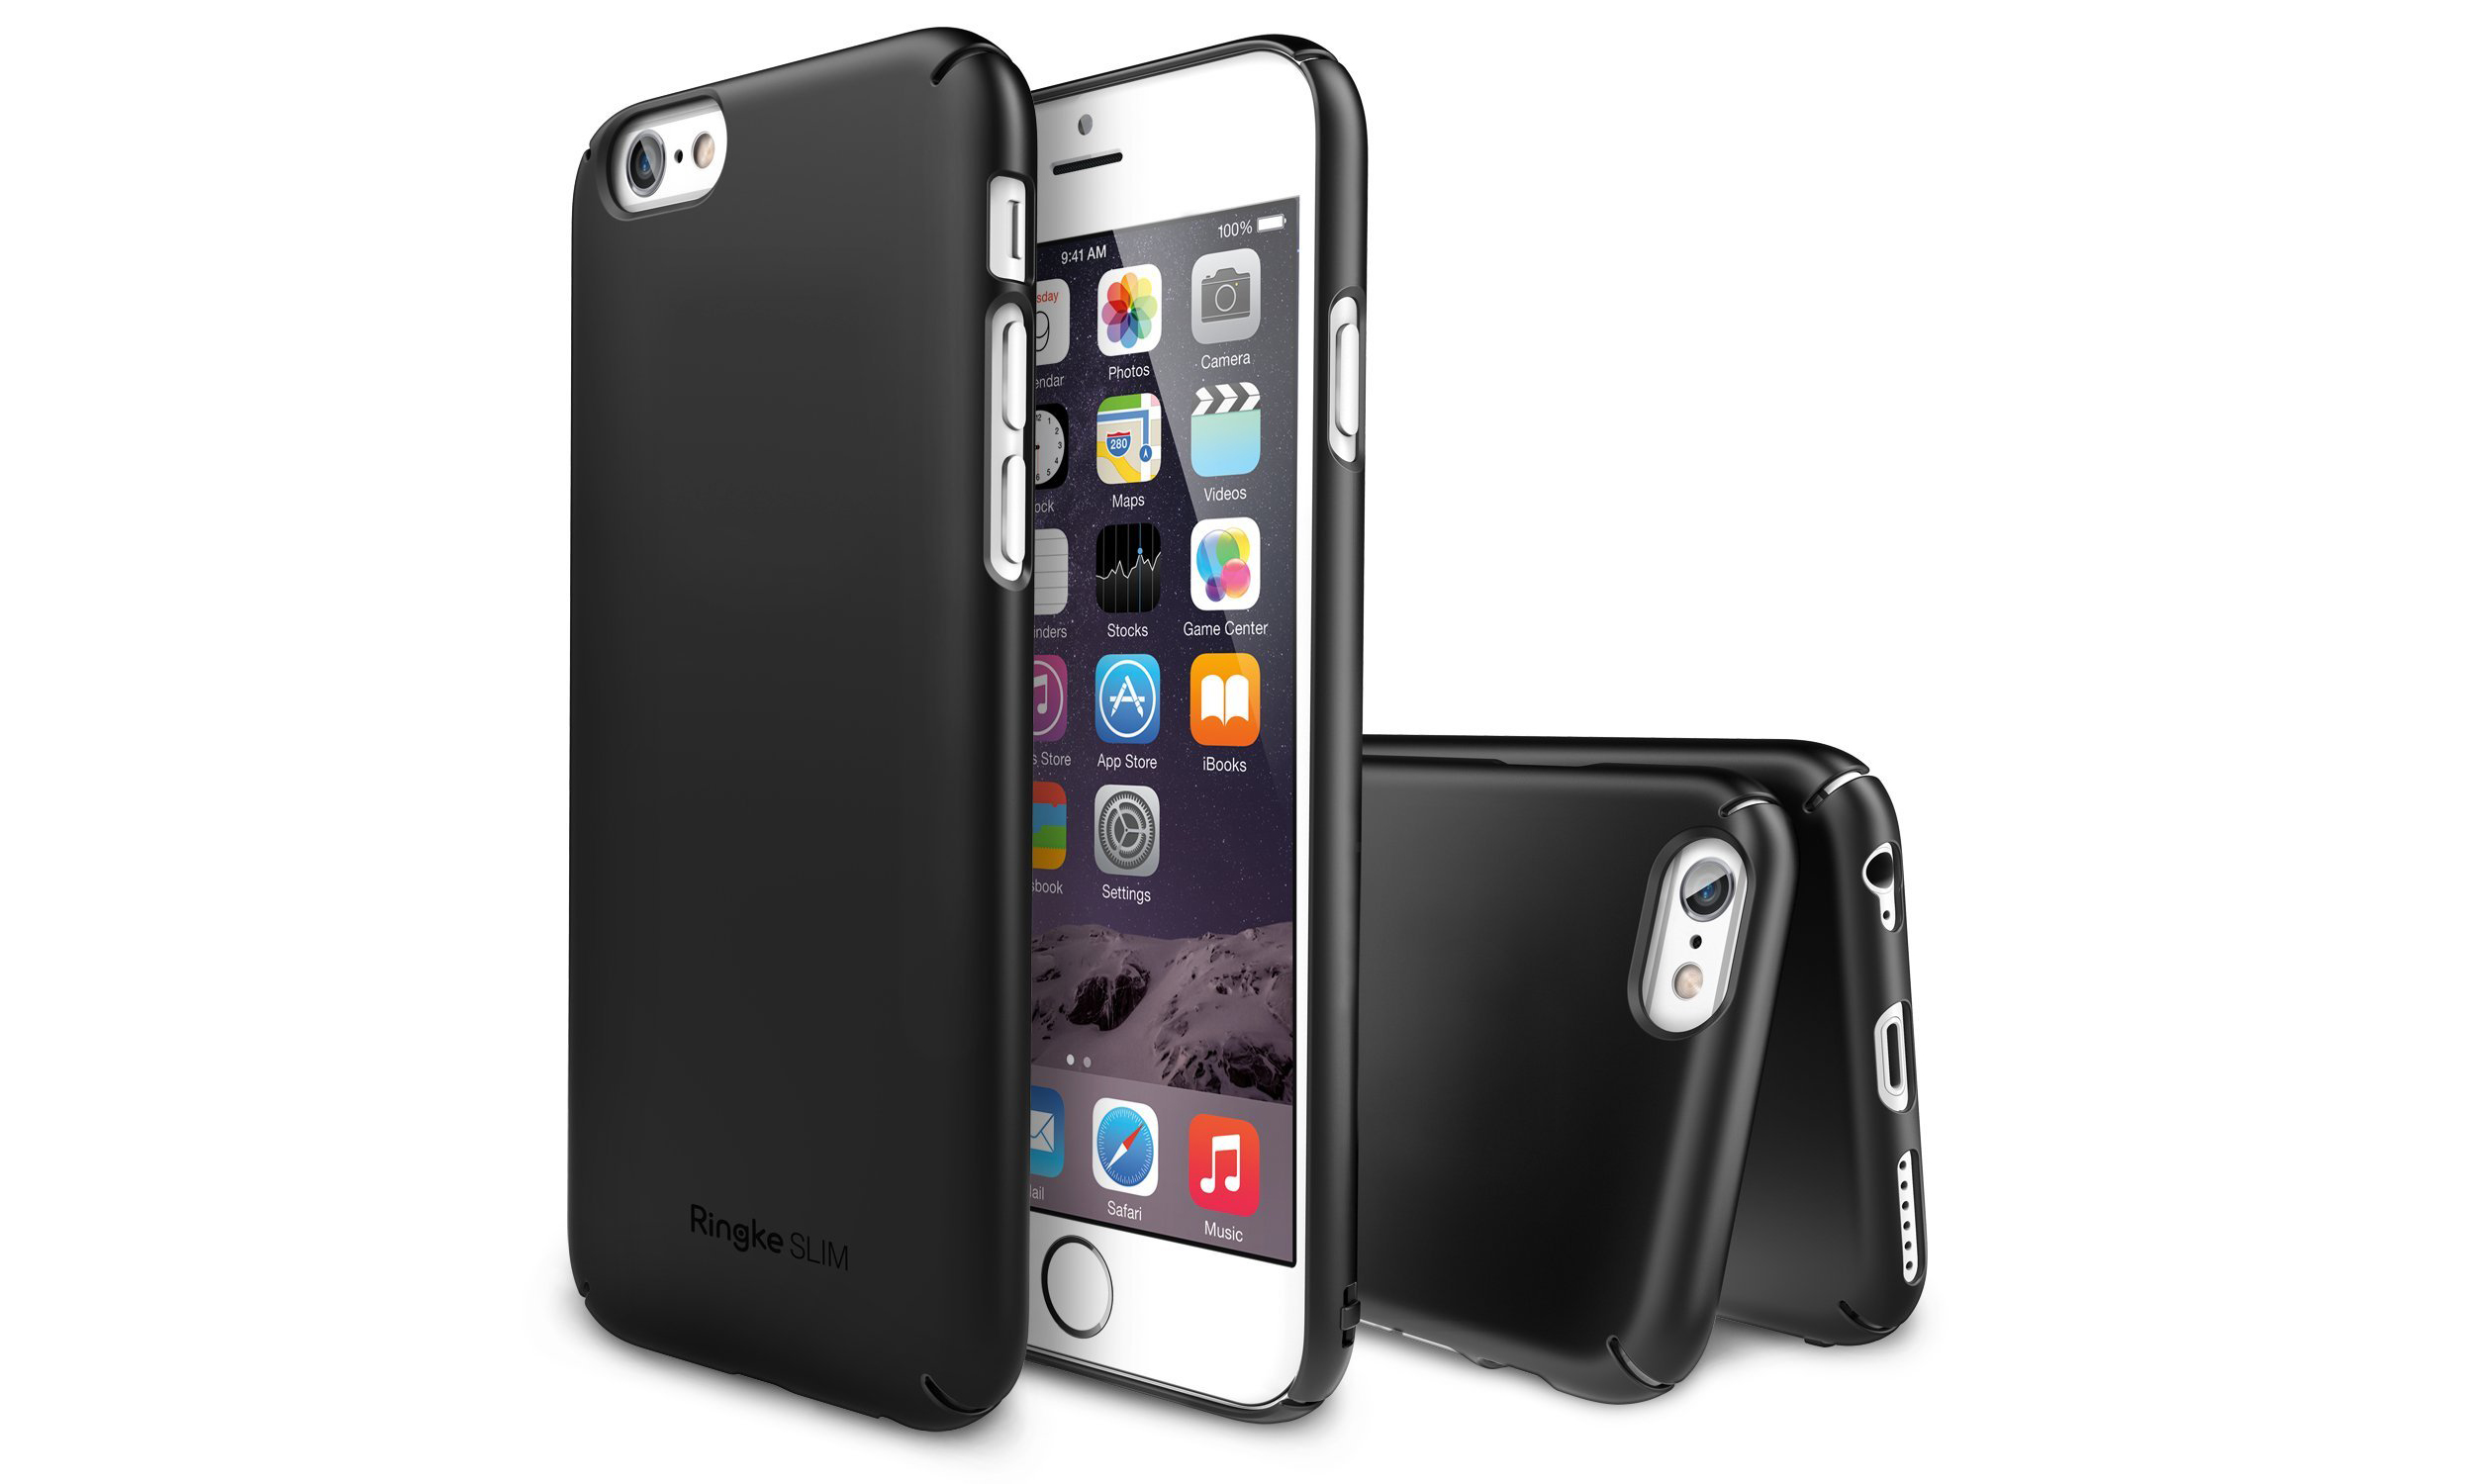 buy iphone 6 cheap iphone 6 galaxy s6 lg g4 cases on at for as 13708